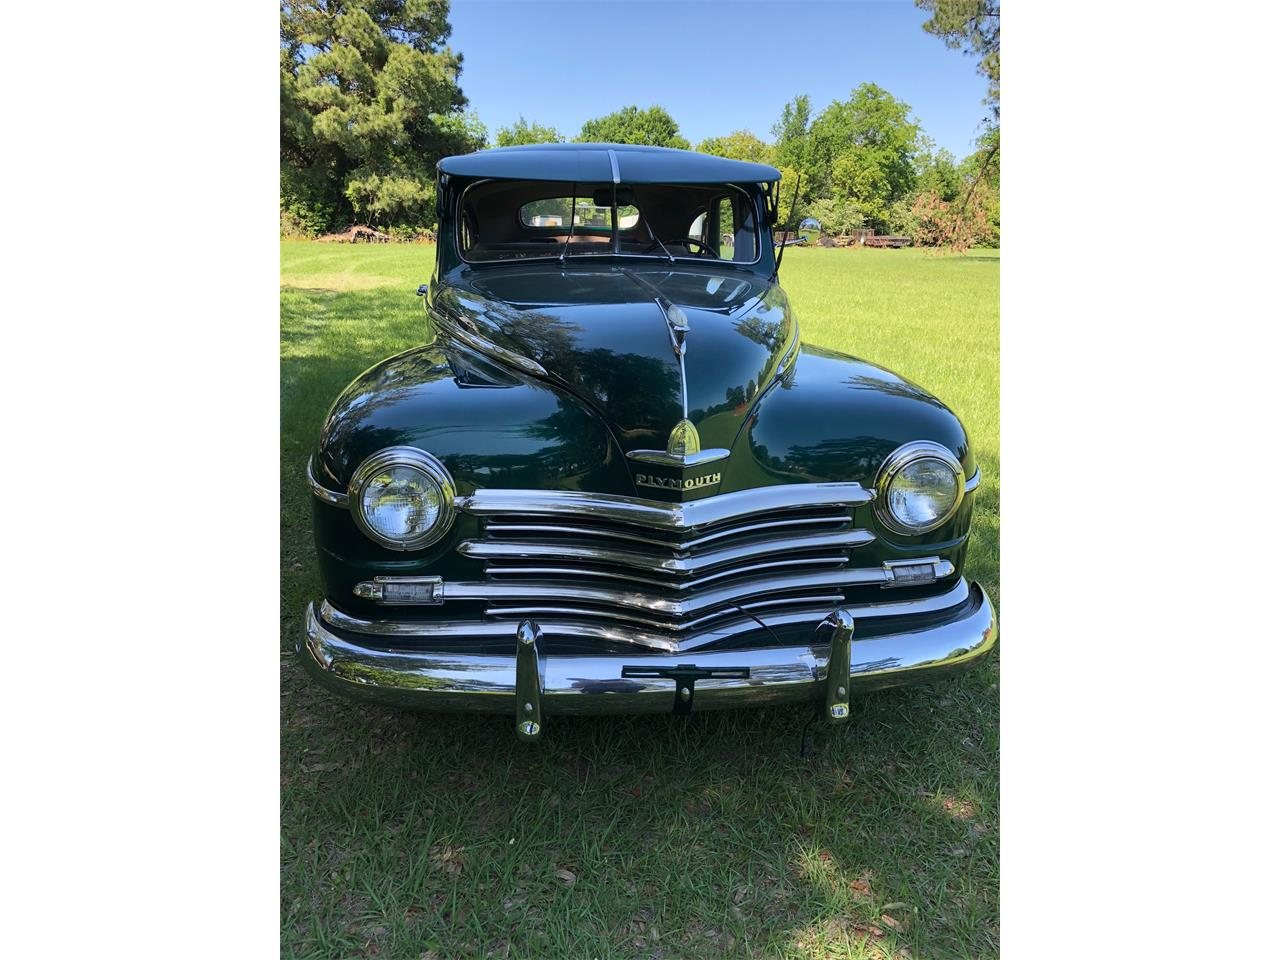 Large Picture of 1947 Special Deluxe located in Tomball  Texas - $12,000.00 - N876